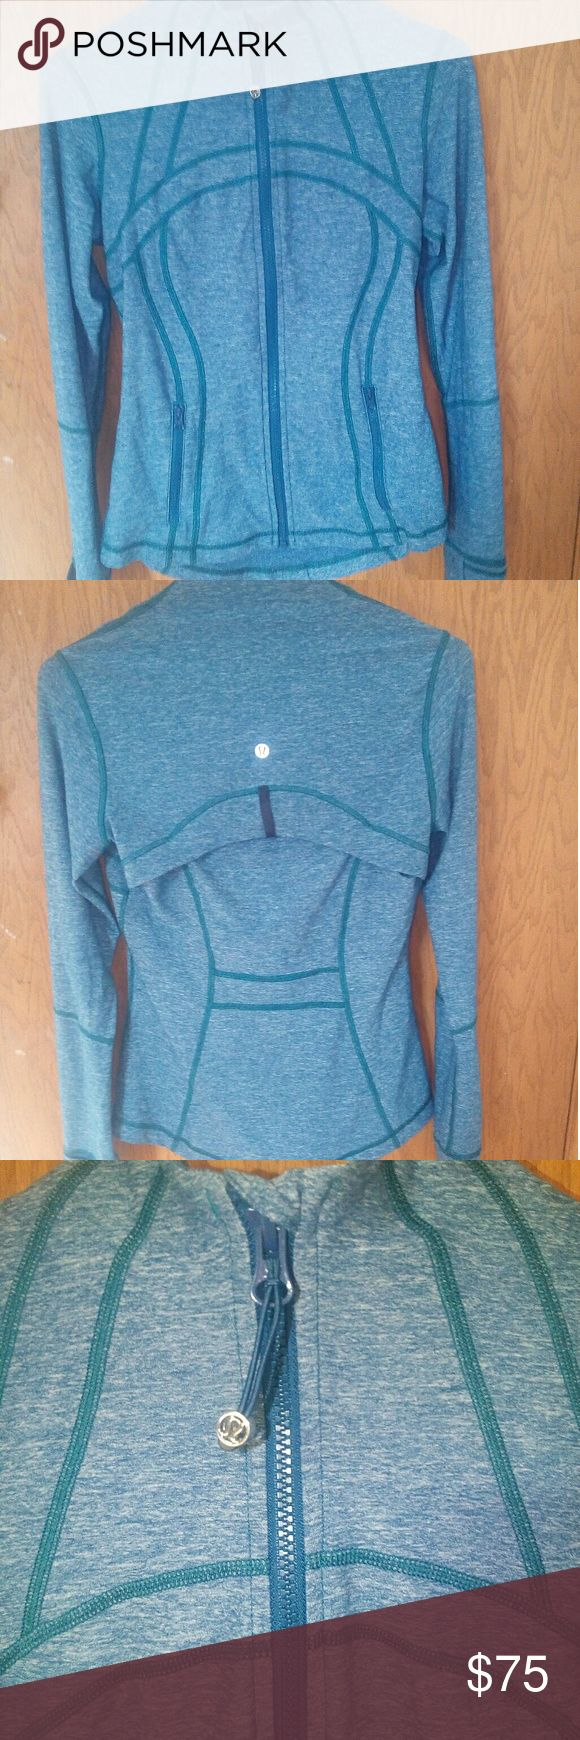 Lululemon Define Jacket - Define jacket from Lululemon athletica - WORN ONCE!!!!  - This jacket is size 6, but the tag that says the size has been removed. - This jacket has finger holes on the sleeves -  Layer on this warm lightweight jacket before you hit the hiking trails or head to the studio. lululemon athletica Tops Sweatshirts & Hoodies